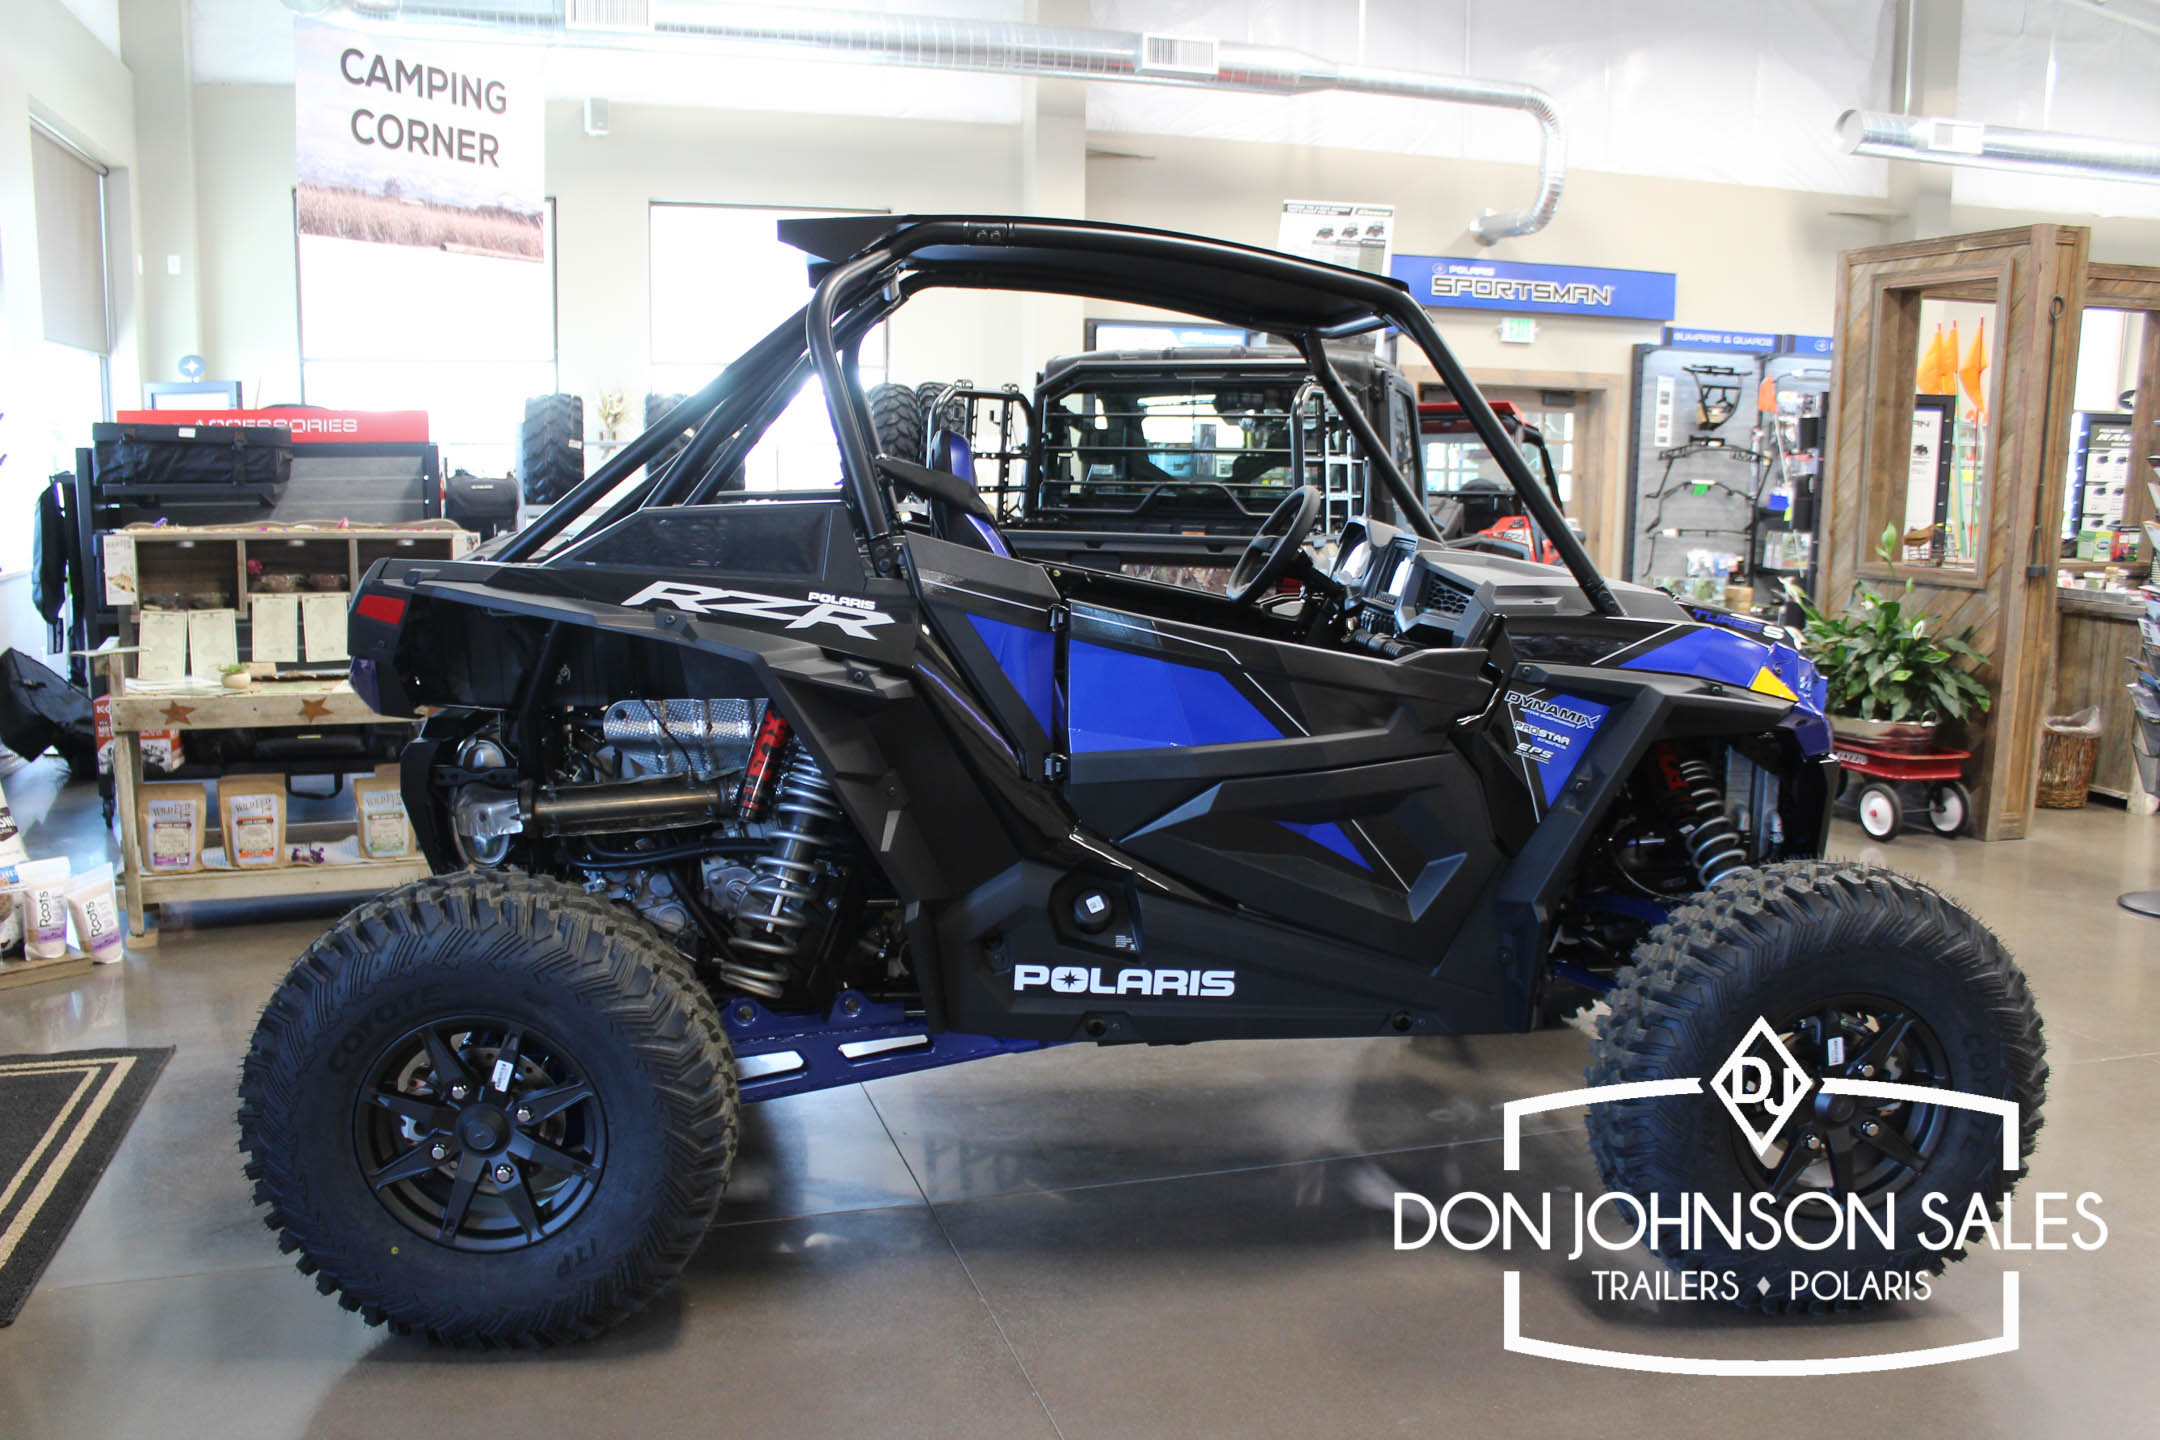 2020 RZR XP Turbo S Stock #787543 – Don Johnson Sales – The